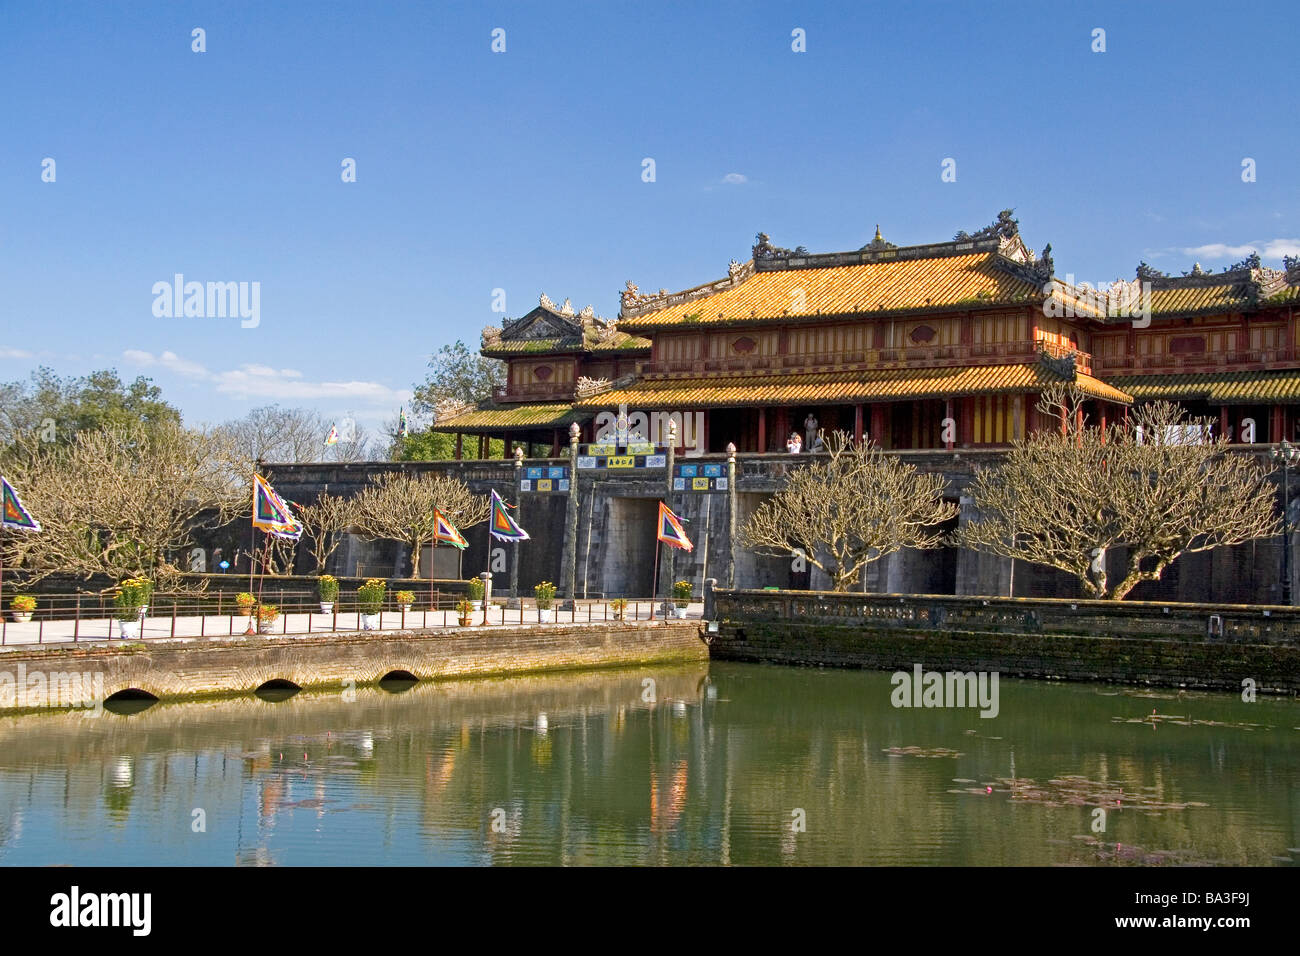 The Imperial Citadel of Hue Vietnam - Stock Image